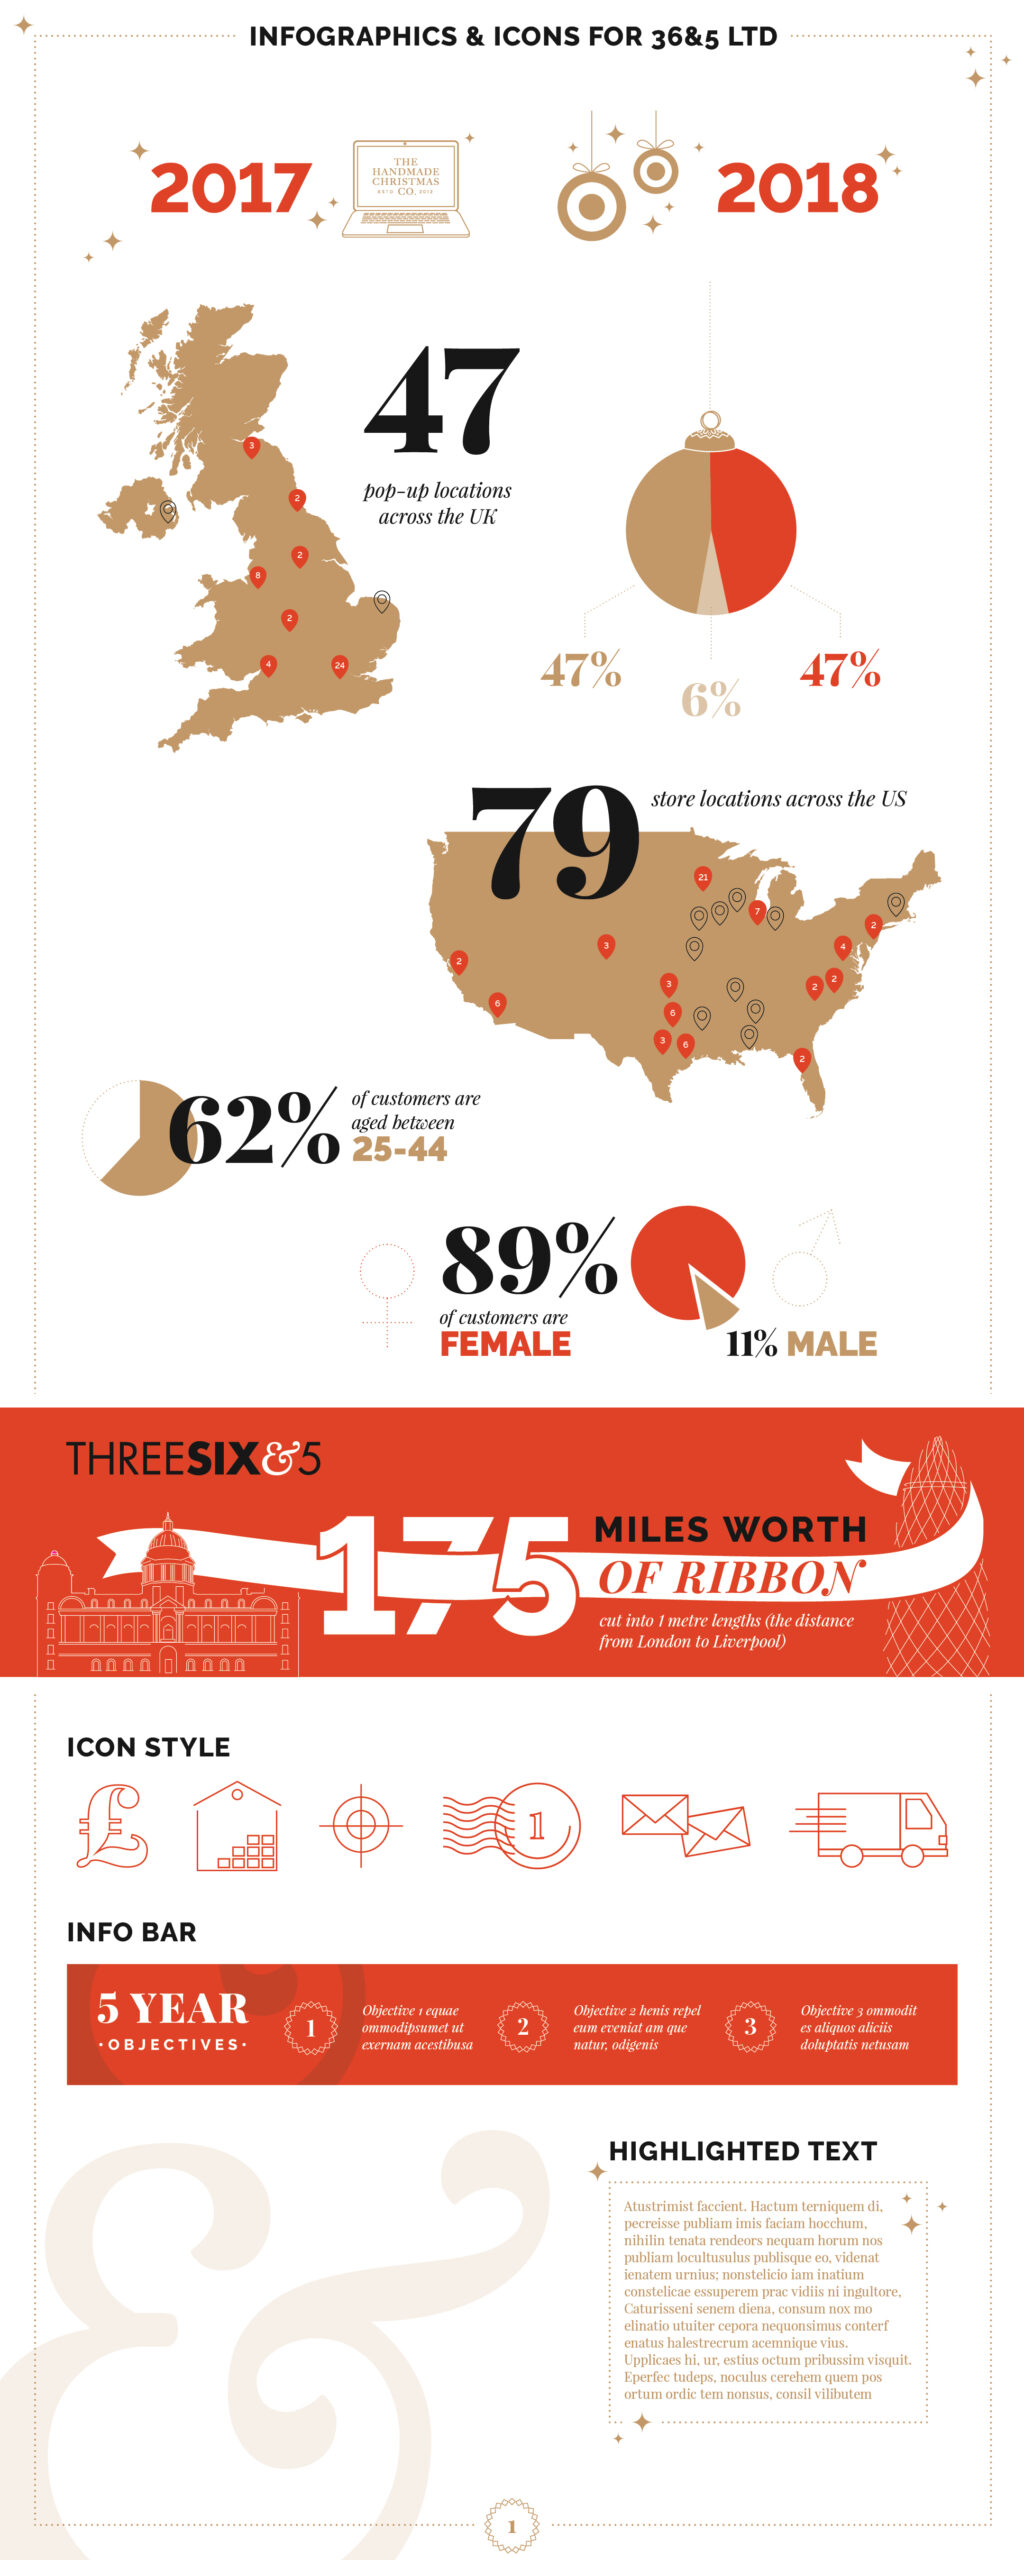 Business infographic and icon style